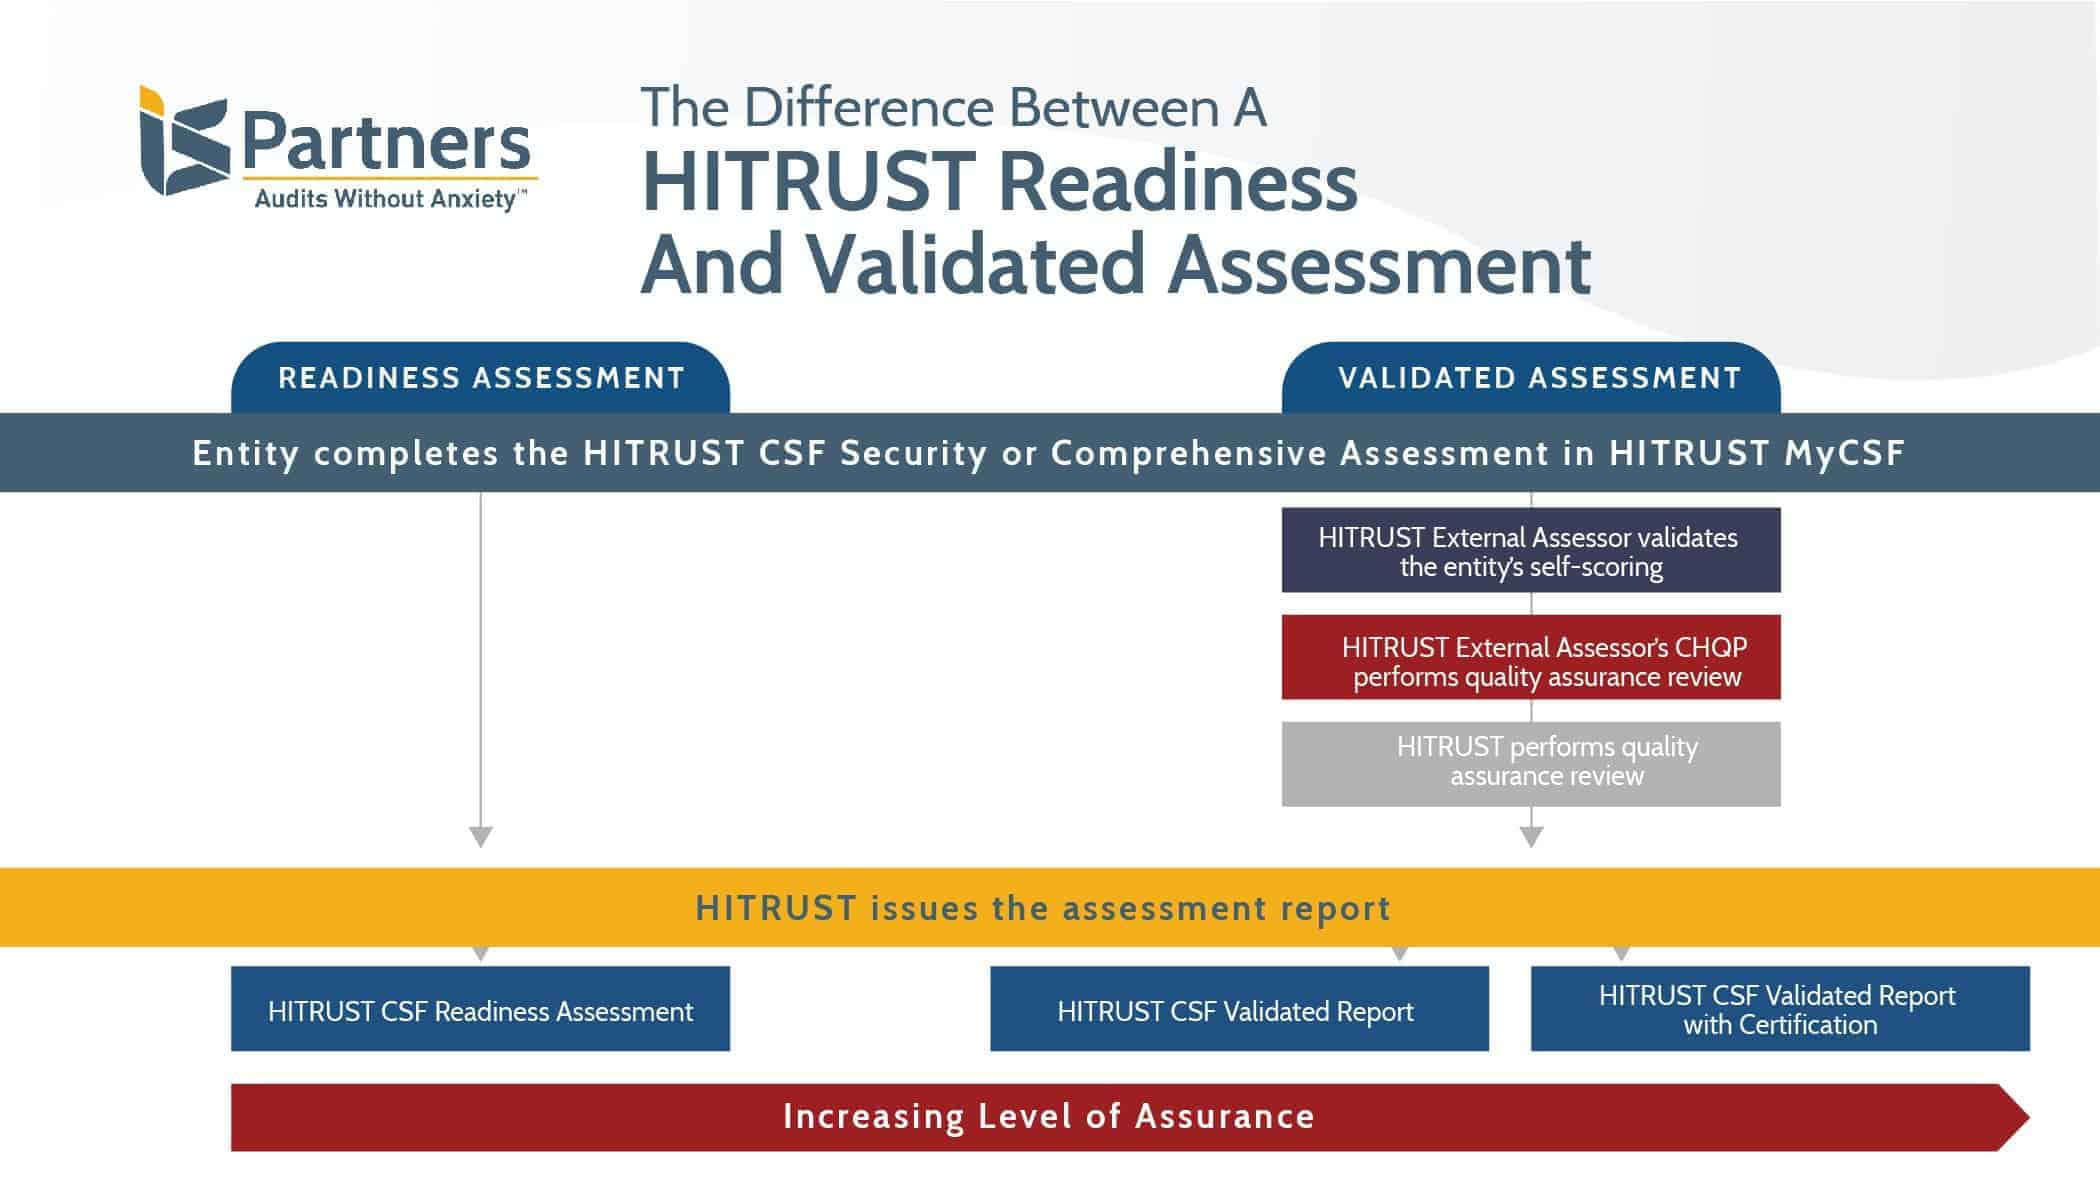 Diagram showing the increasing level of assurance provided by a HITRUST validated assessment in comparison to a HITRUST readiness assessment.